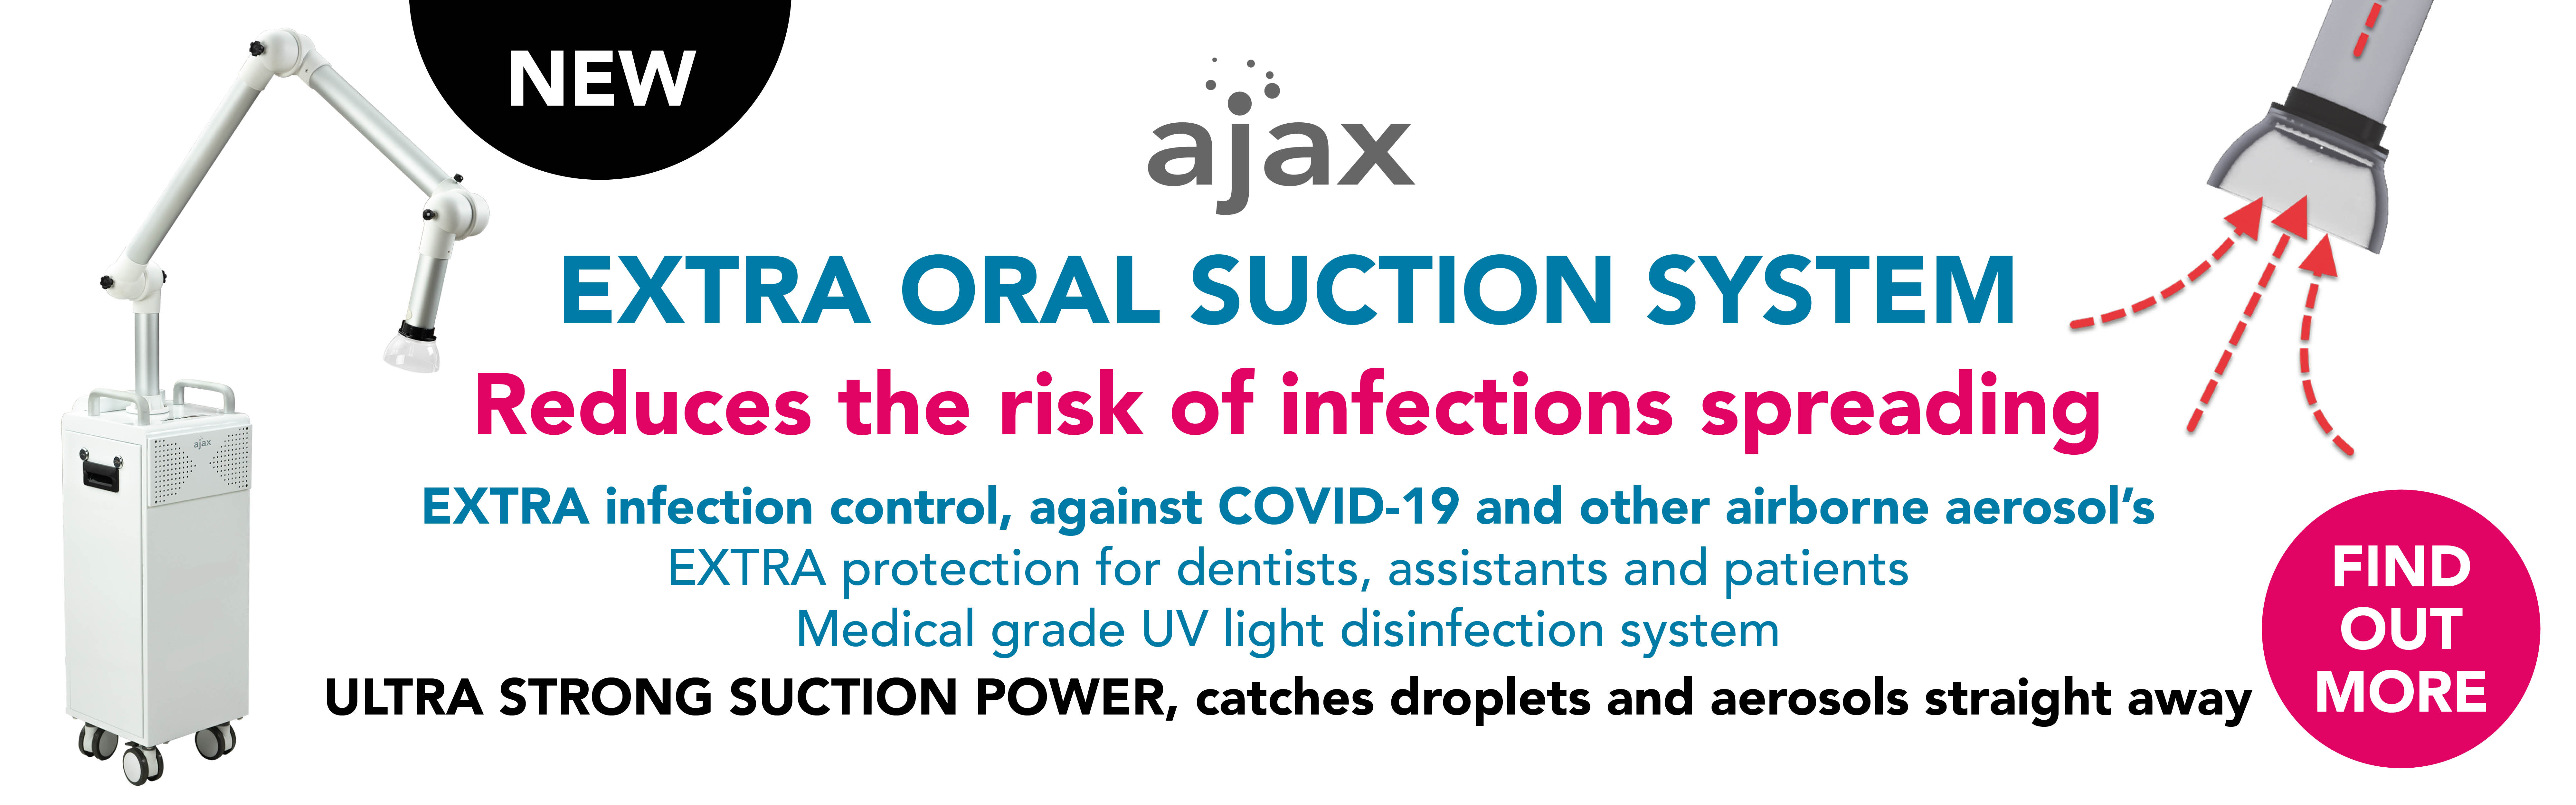 SP1000 Ajax extra Oral Suction System